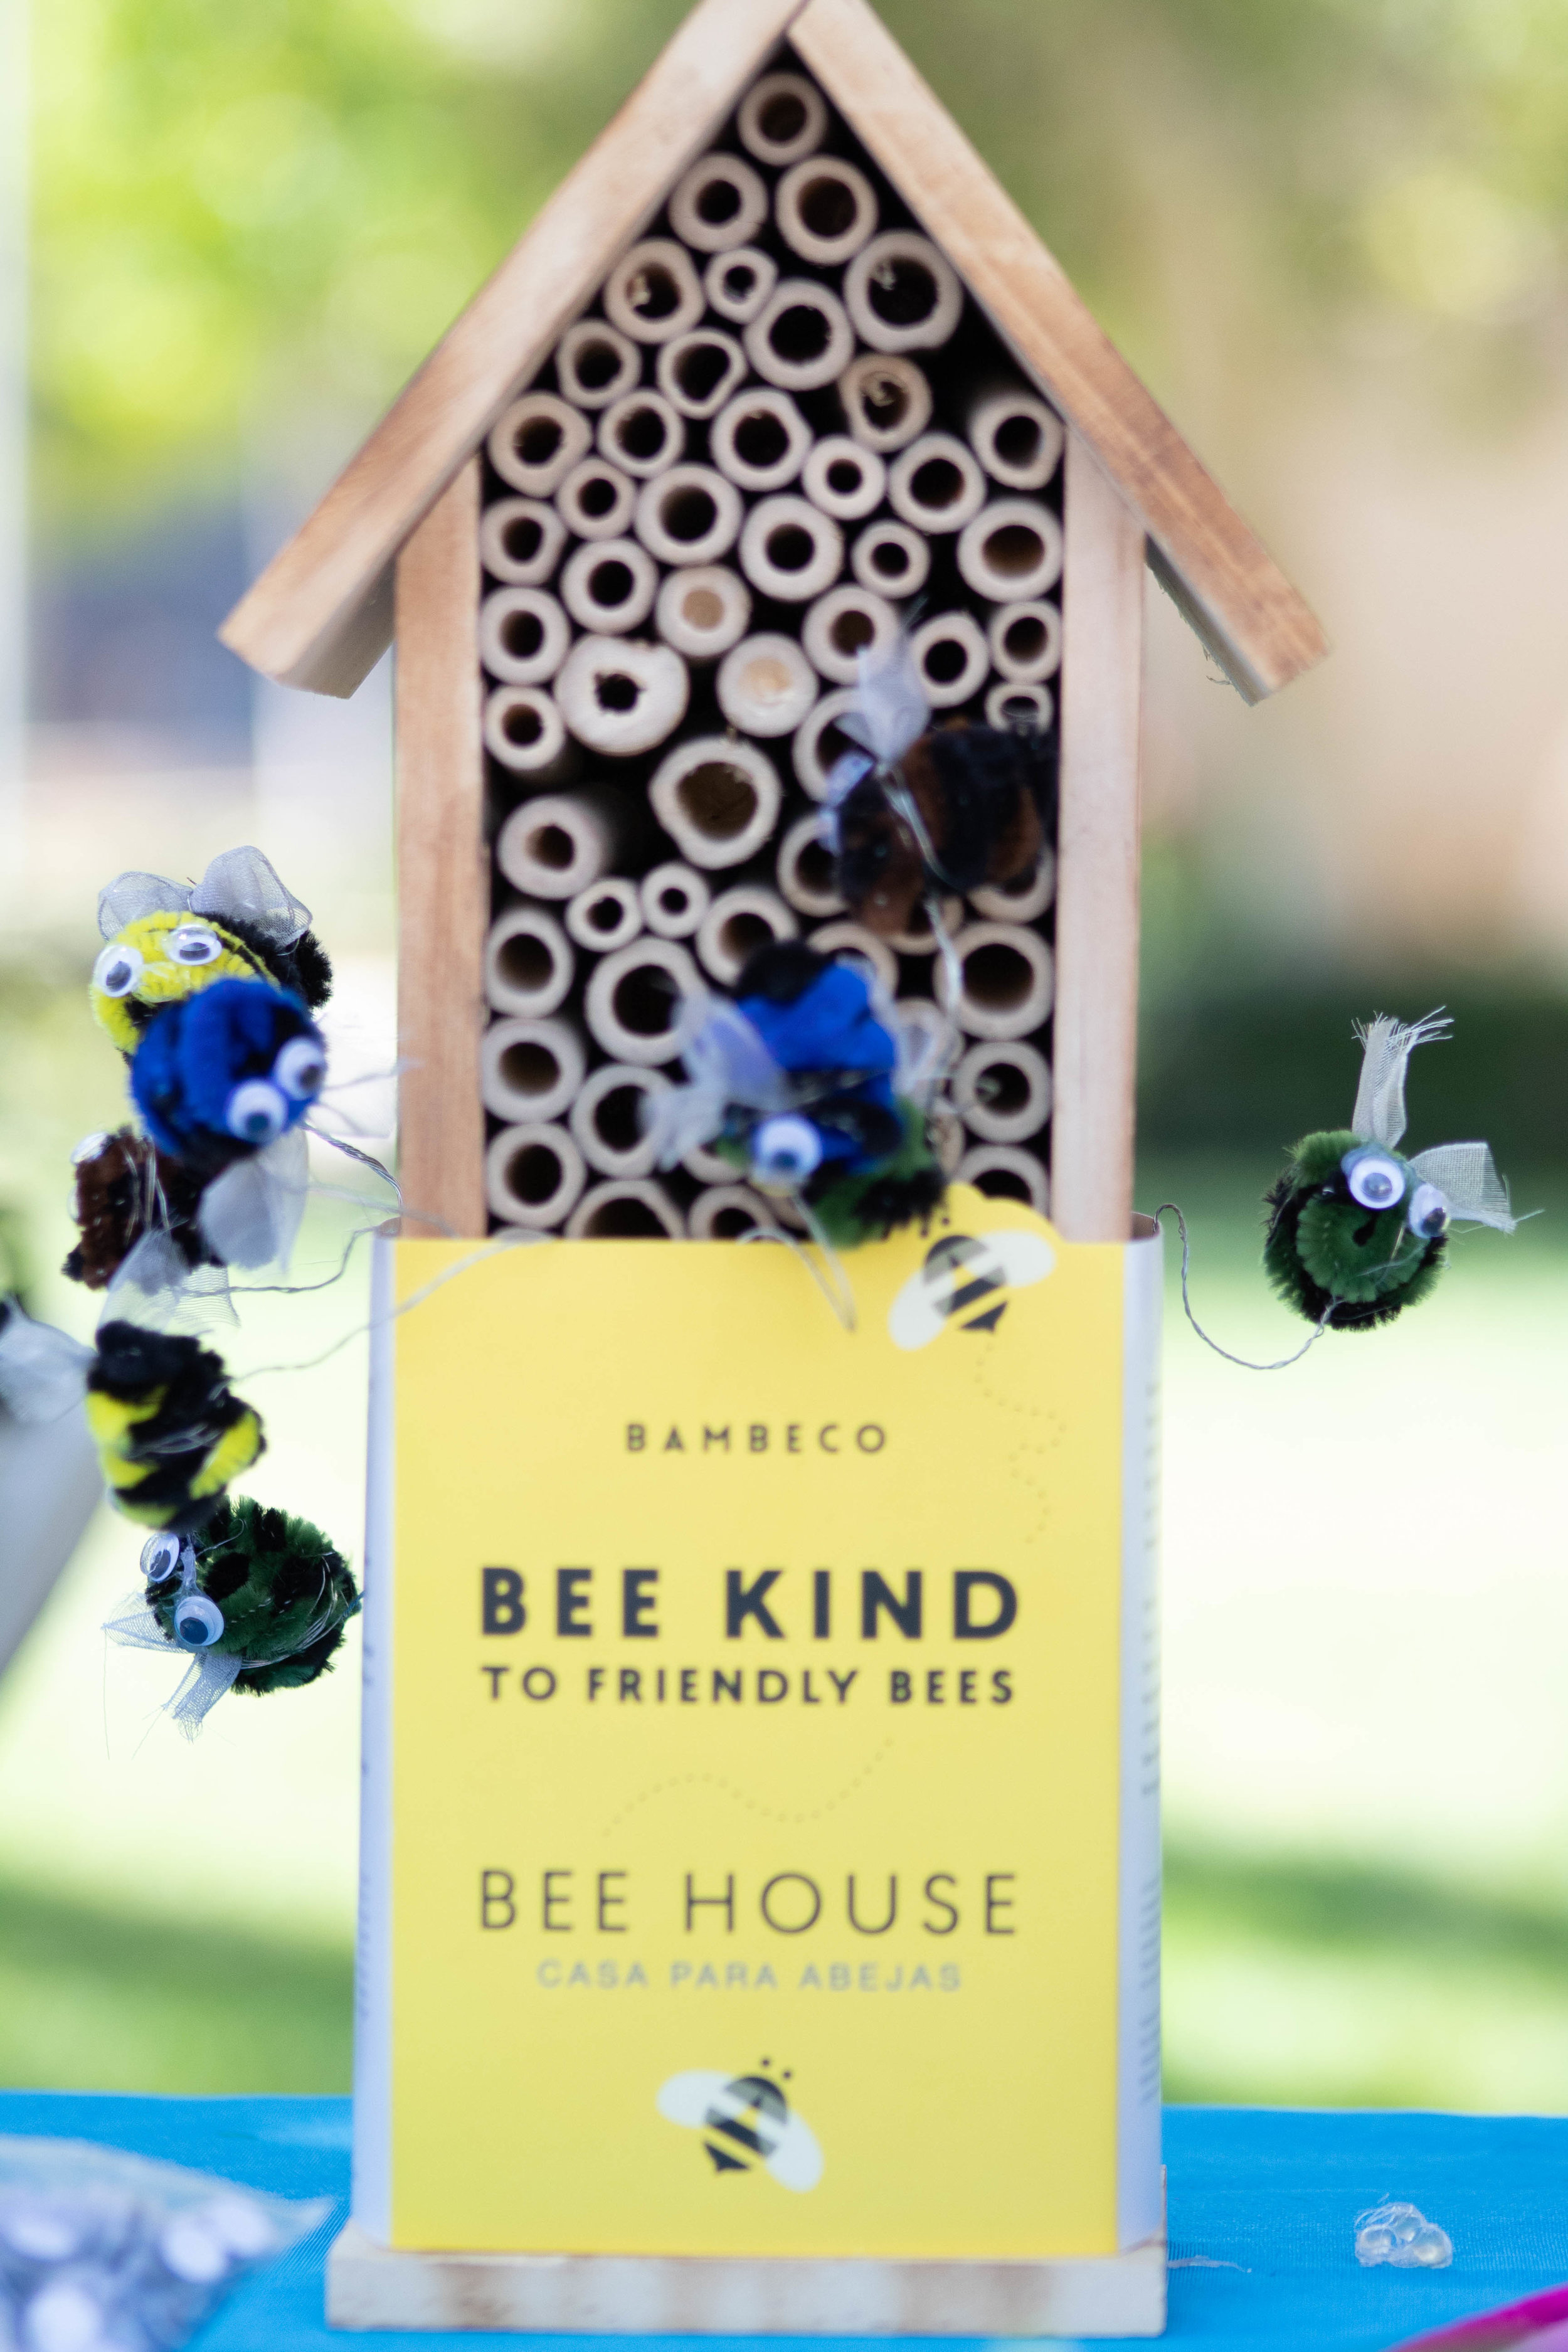 A Bee Box created by the Santa Monica College Natural History Club during Earth Week Interactive Learning Day on Wednesday, April 24, 2019 at the SMC main campus quad in Santa Monica, California. (Catherine Lima/Corsair Staff)